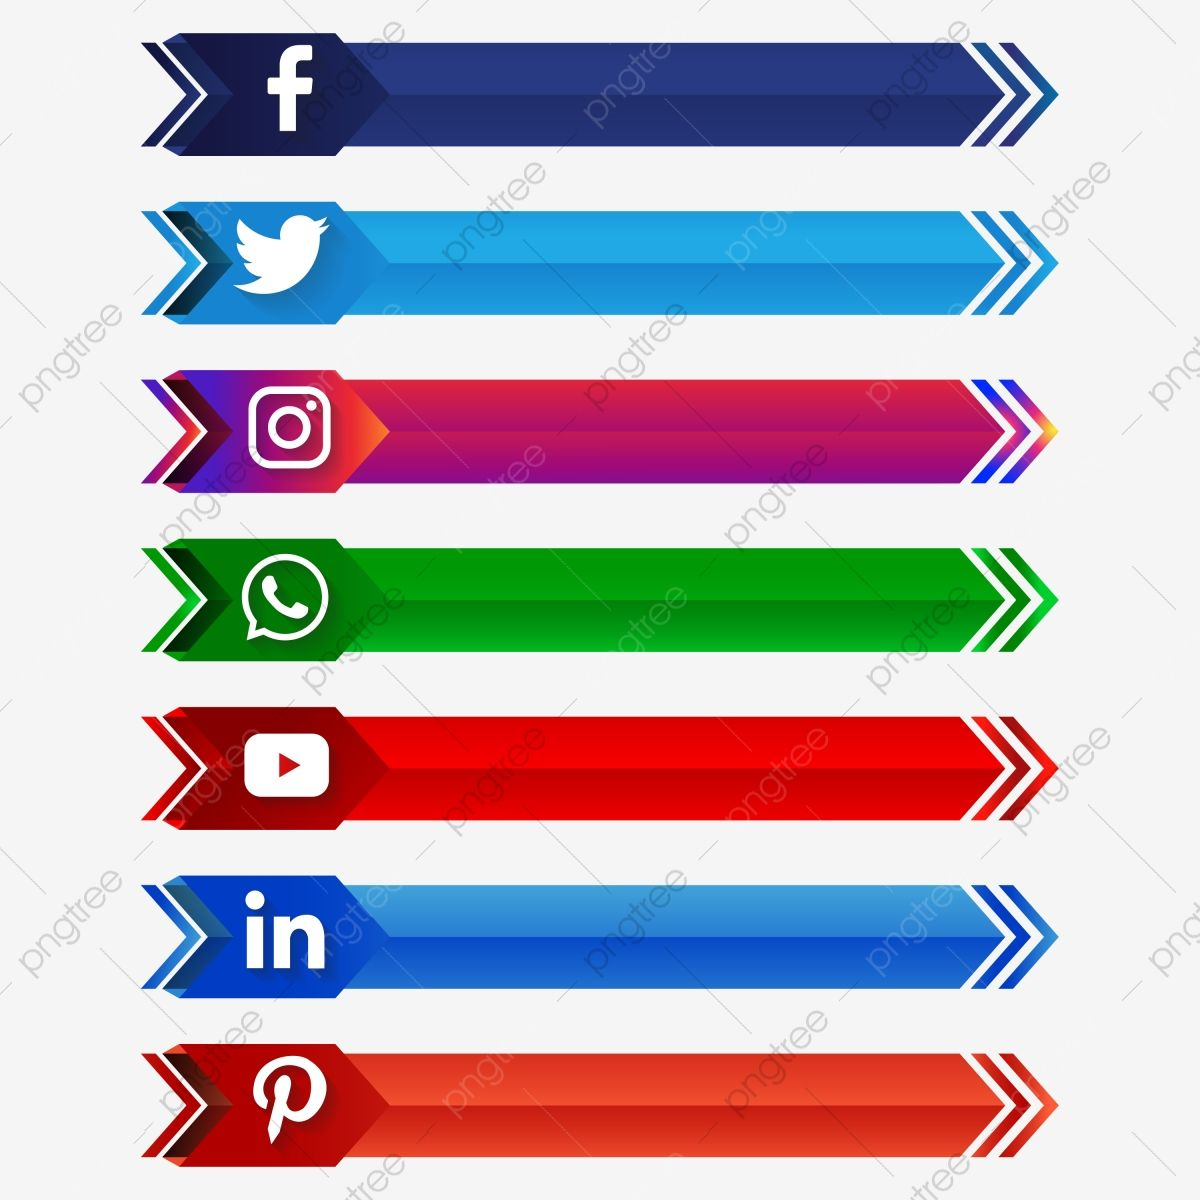 Social Media Banner Tags Set Png Social Media Clipart Social Media Text Buttons Social Media Buttons Png And Vector With Transparent Background For Free Down Social Media Banner Social Media Buttons